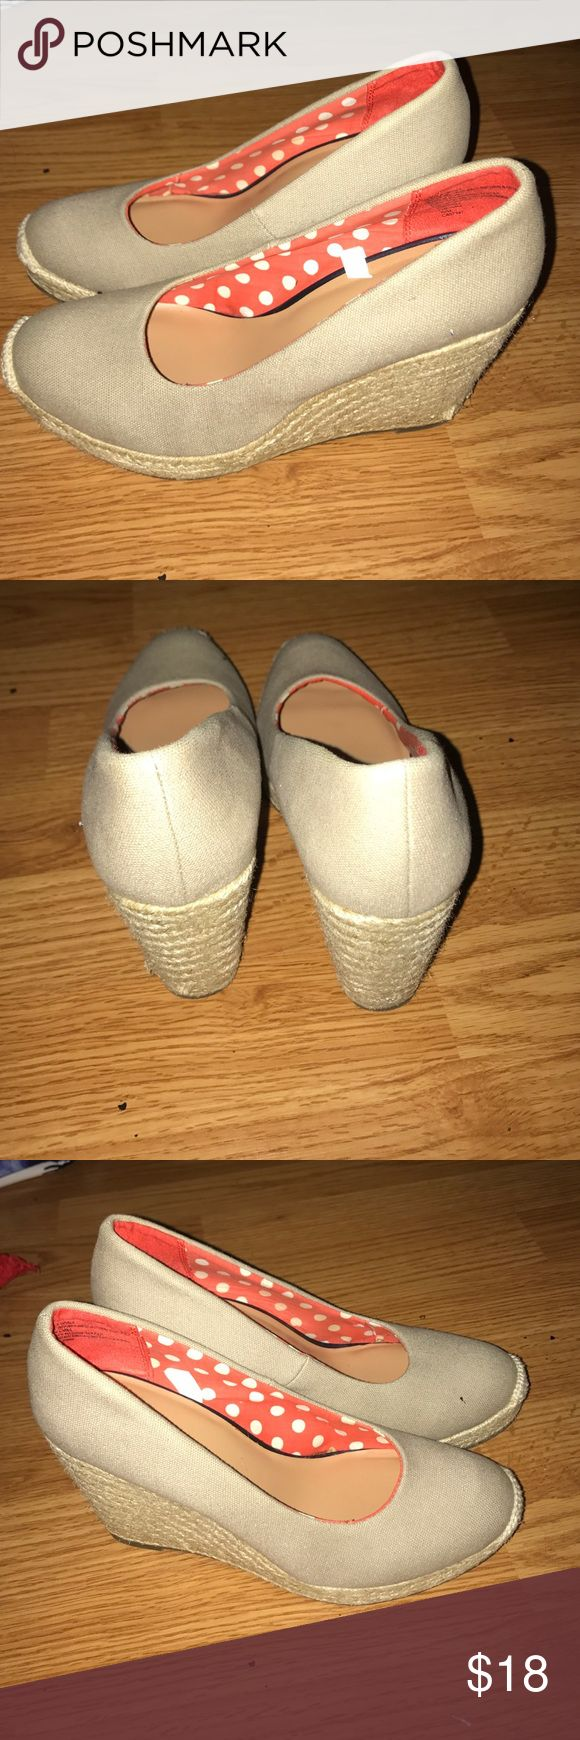 Beige Espadrille Wedge Pump Beige espadrille closed shoes. Super cute for summer time maxi and sundresses and shorts!!! I wore them once, unfortunately they don't fit me properly. Wedge is standard size and you can wear no show socks with them as well. Merona Shoes Espadrilles